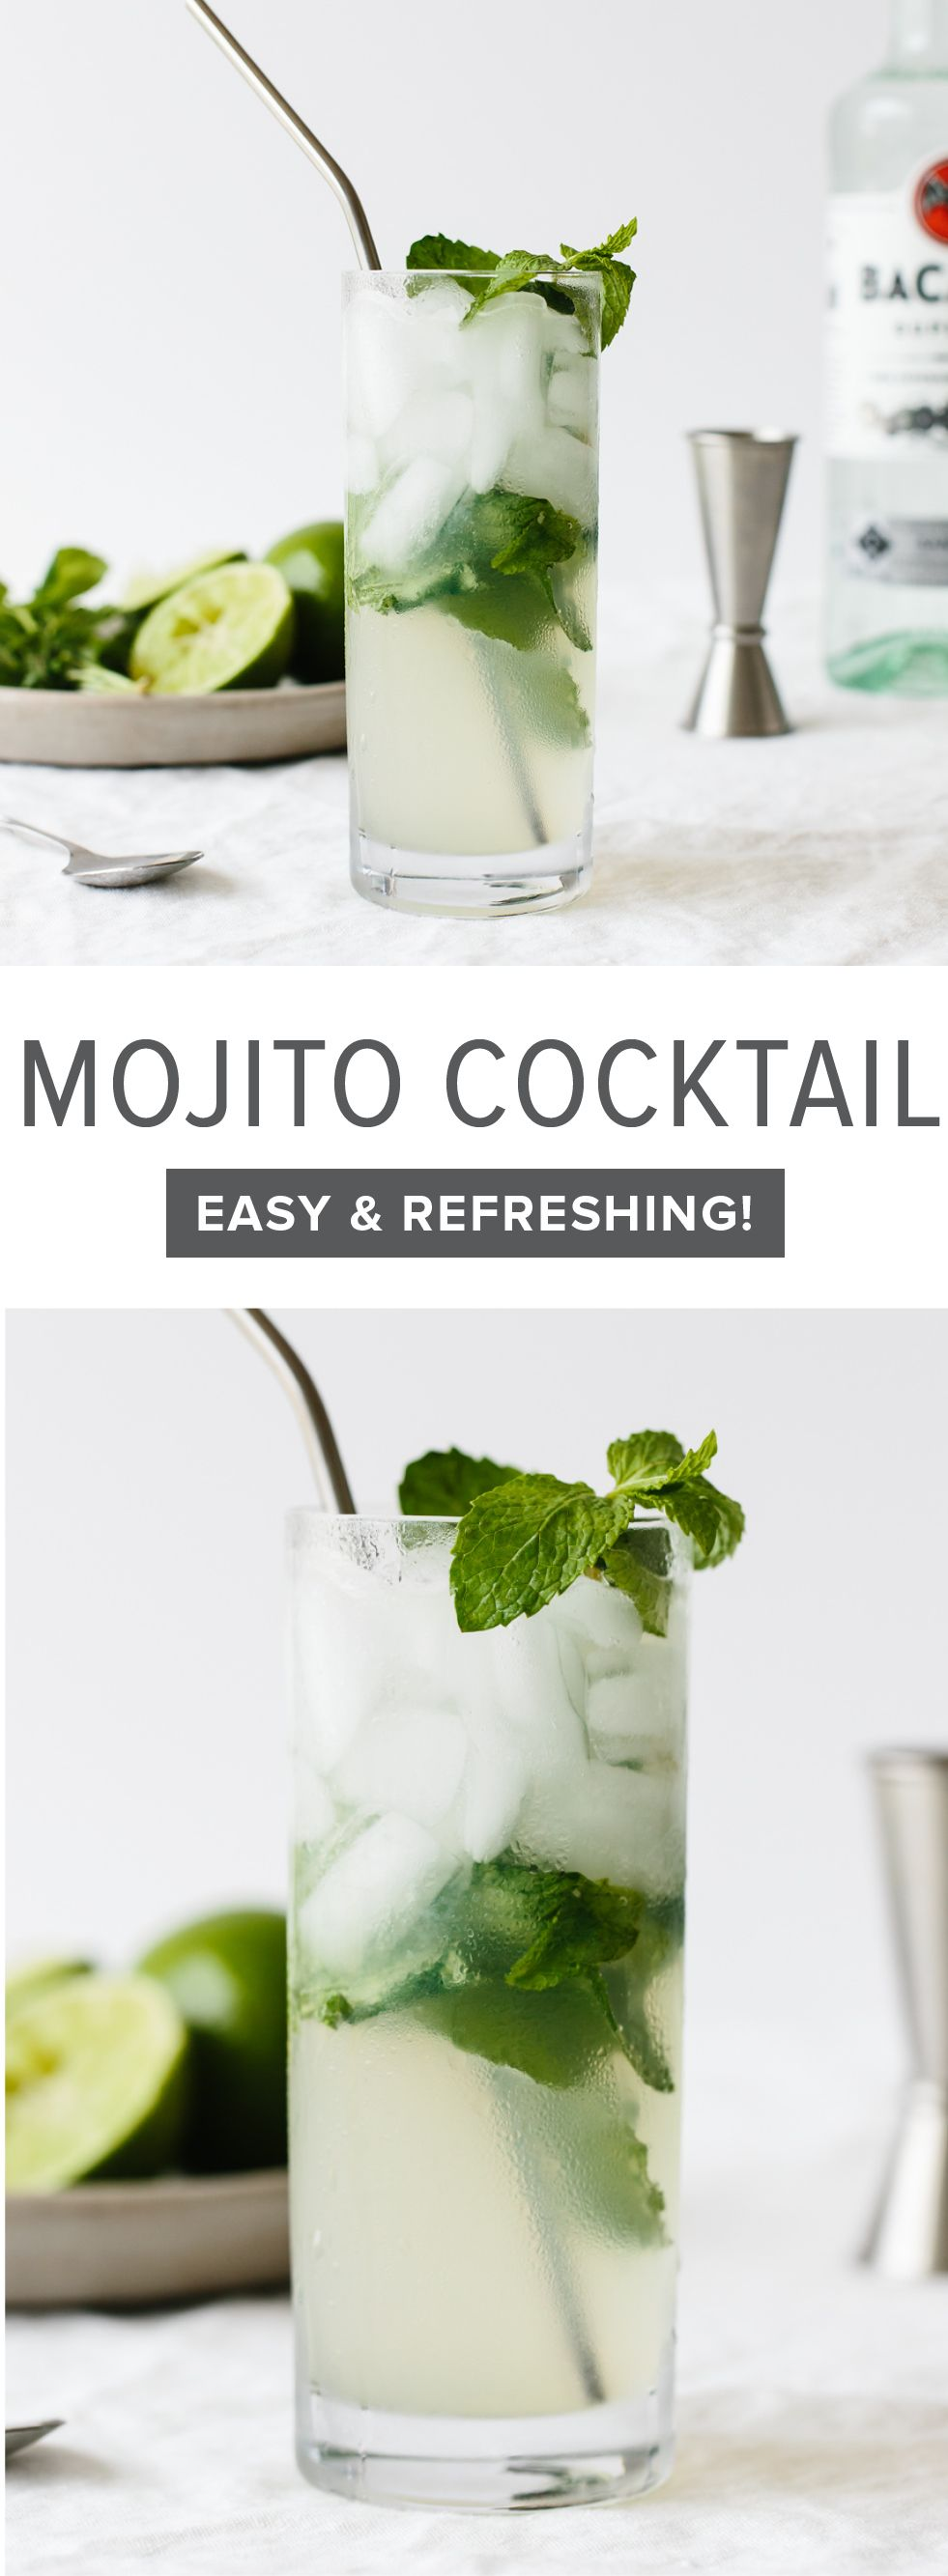 This Mojito Pitcher Recipe Is The Best Mojito Recipe For A Crowd Of People If You Re Throwing A Summer Par Best Mojito Recipe Mojito Pitcher Pitcher Cocktails